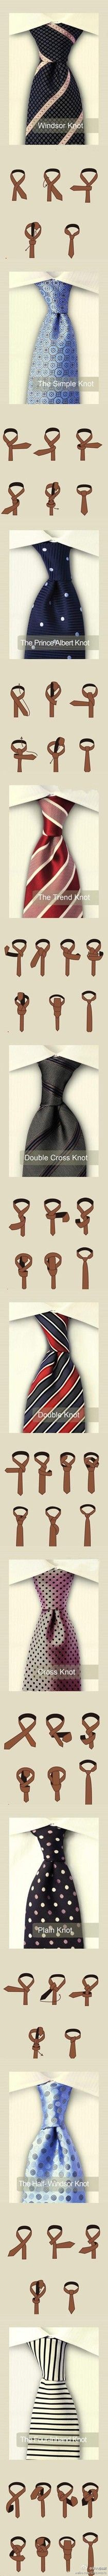 Learn to tie any tie